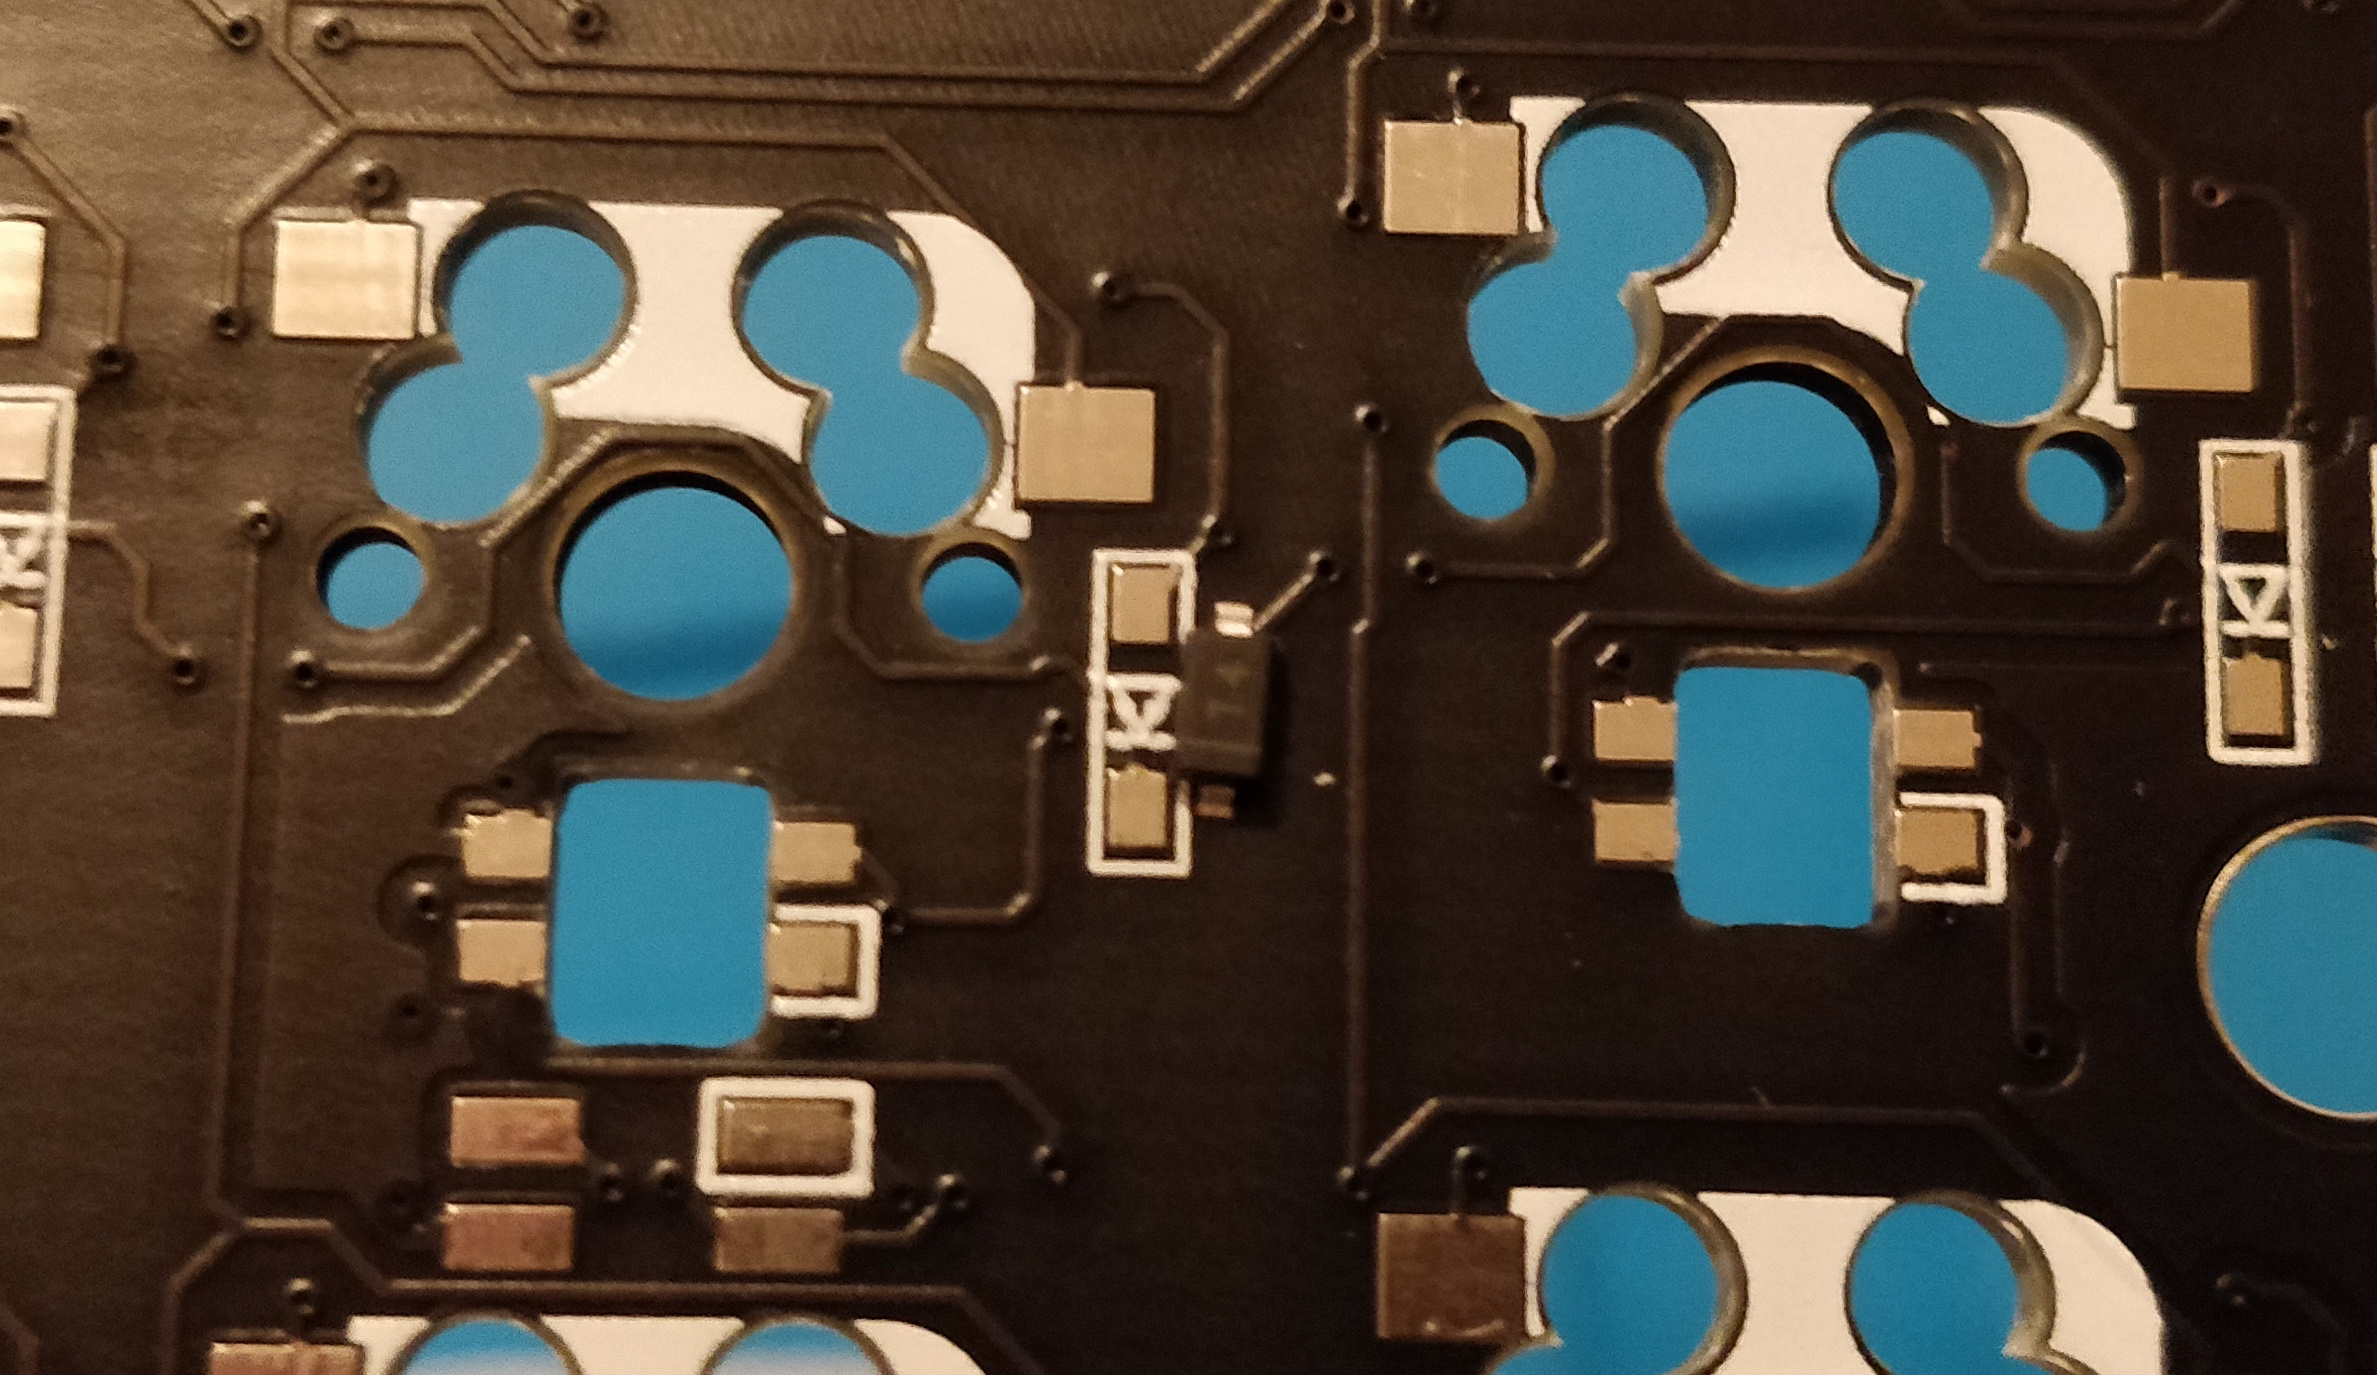 step 1.2 - corne crkbd - diodes zoomed in